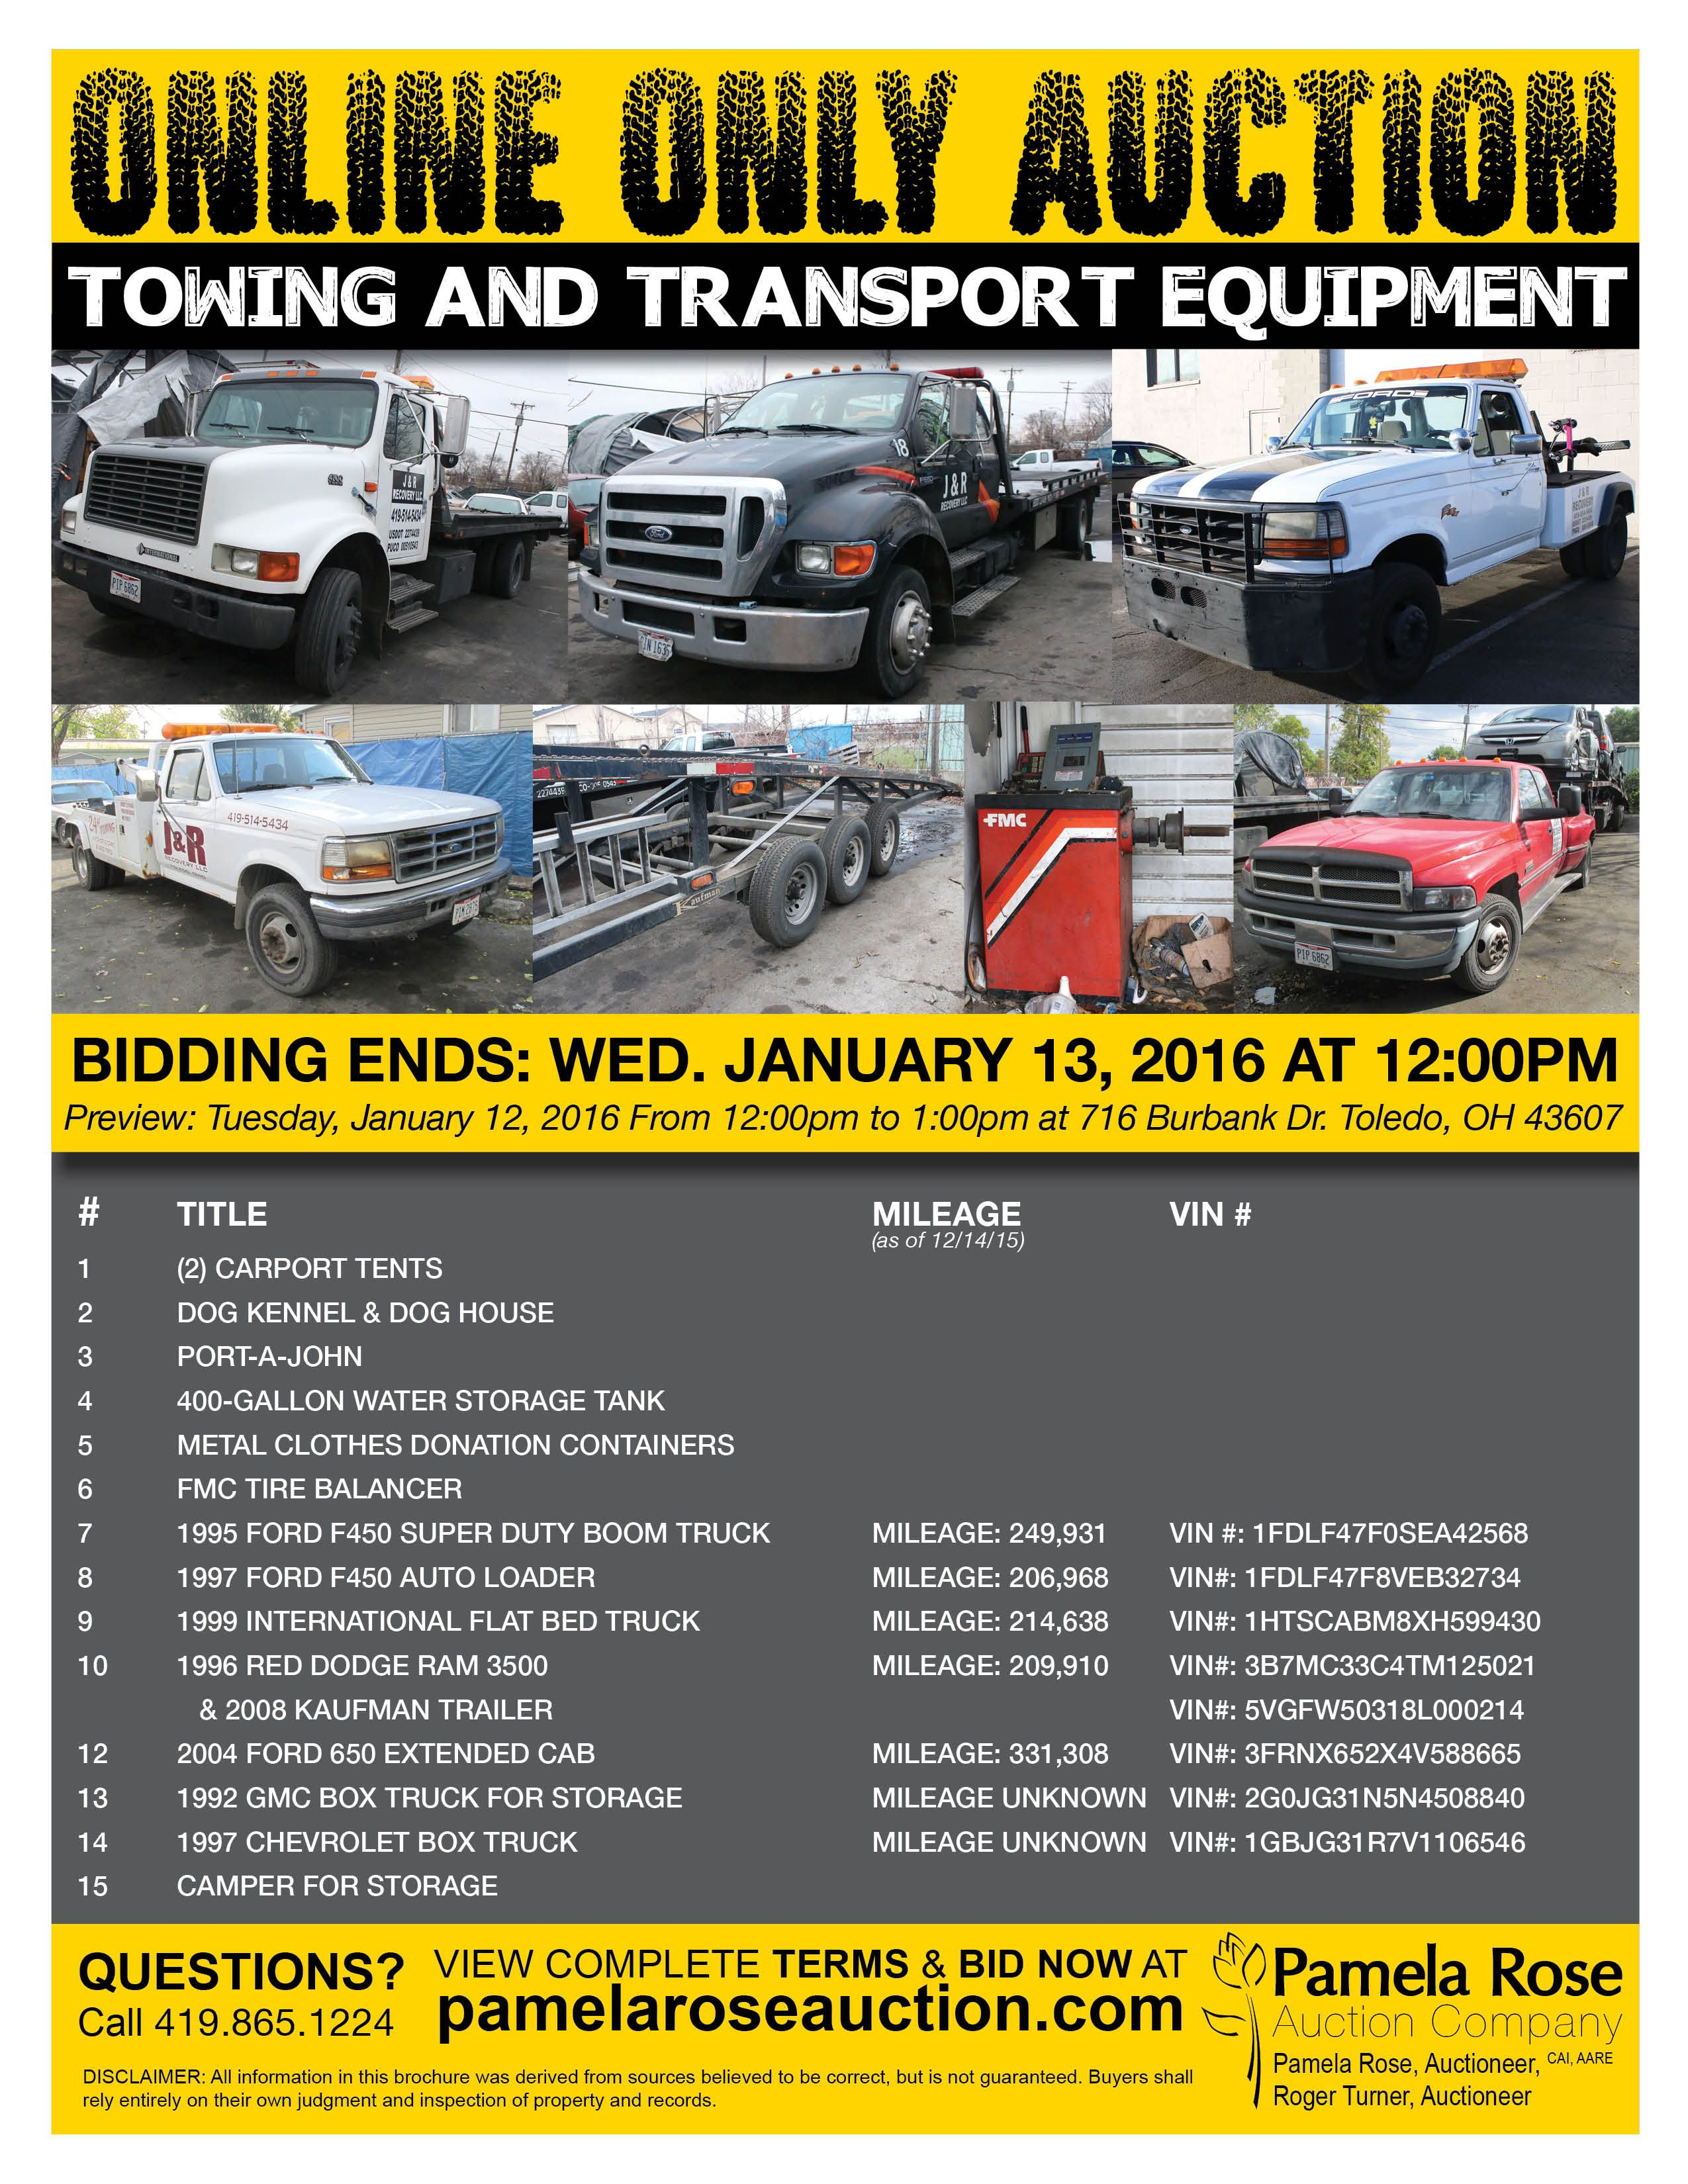 Online Only Auction Of Towing Transport Equipment Bidding Ends Wed Jan 13 At 12pm Preview Tues Jan 12 F Water Storage Tanks Carport Tent Water Storage